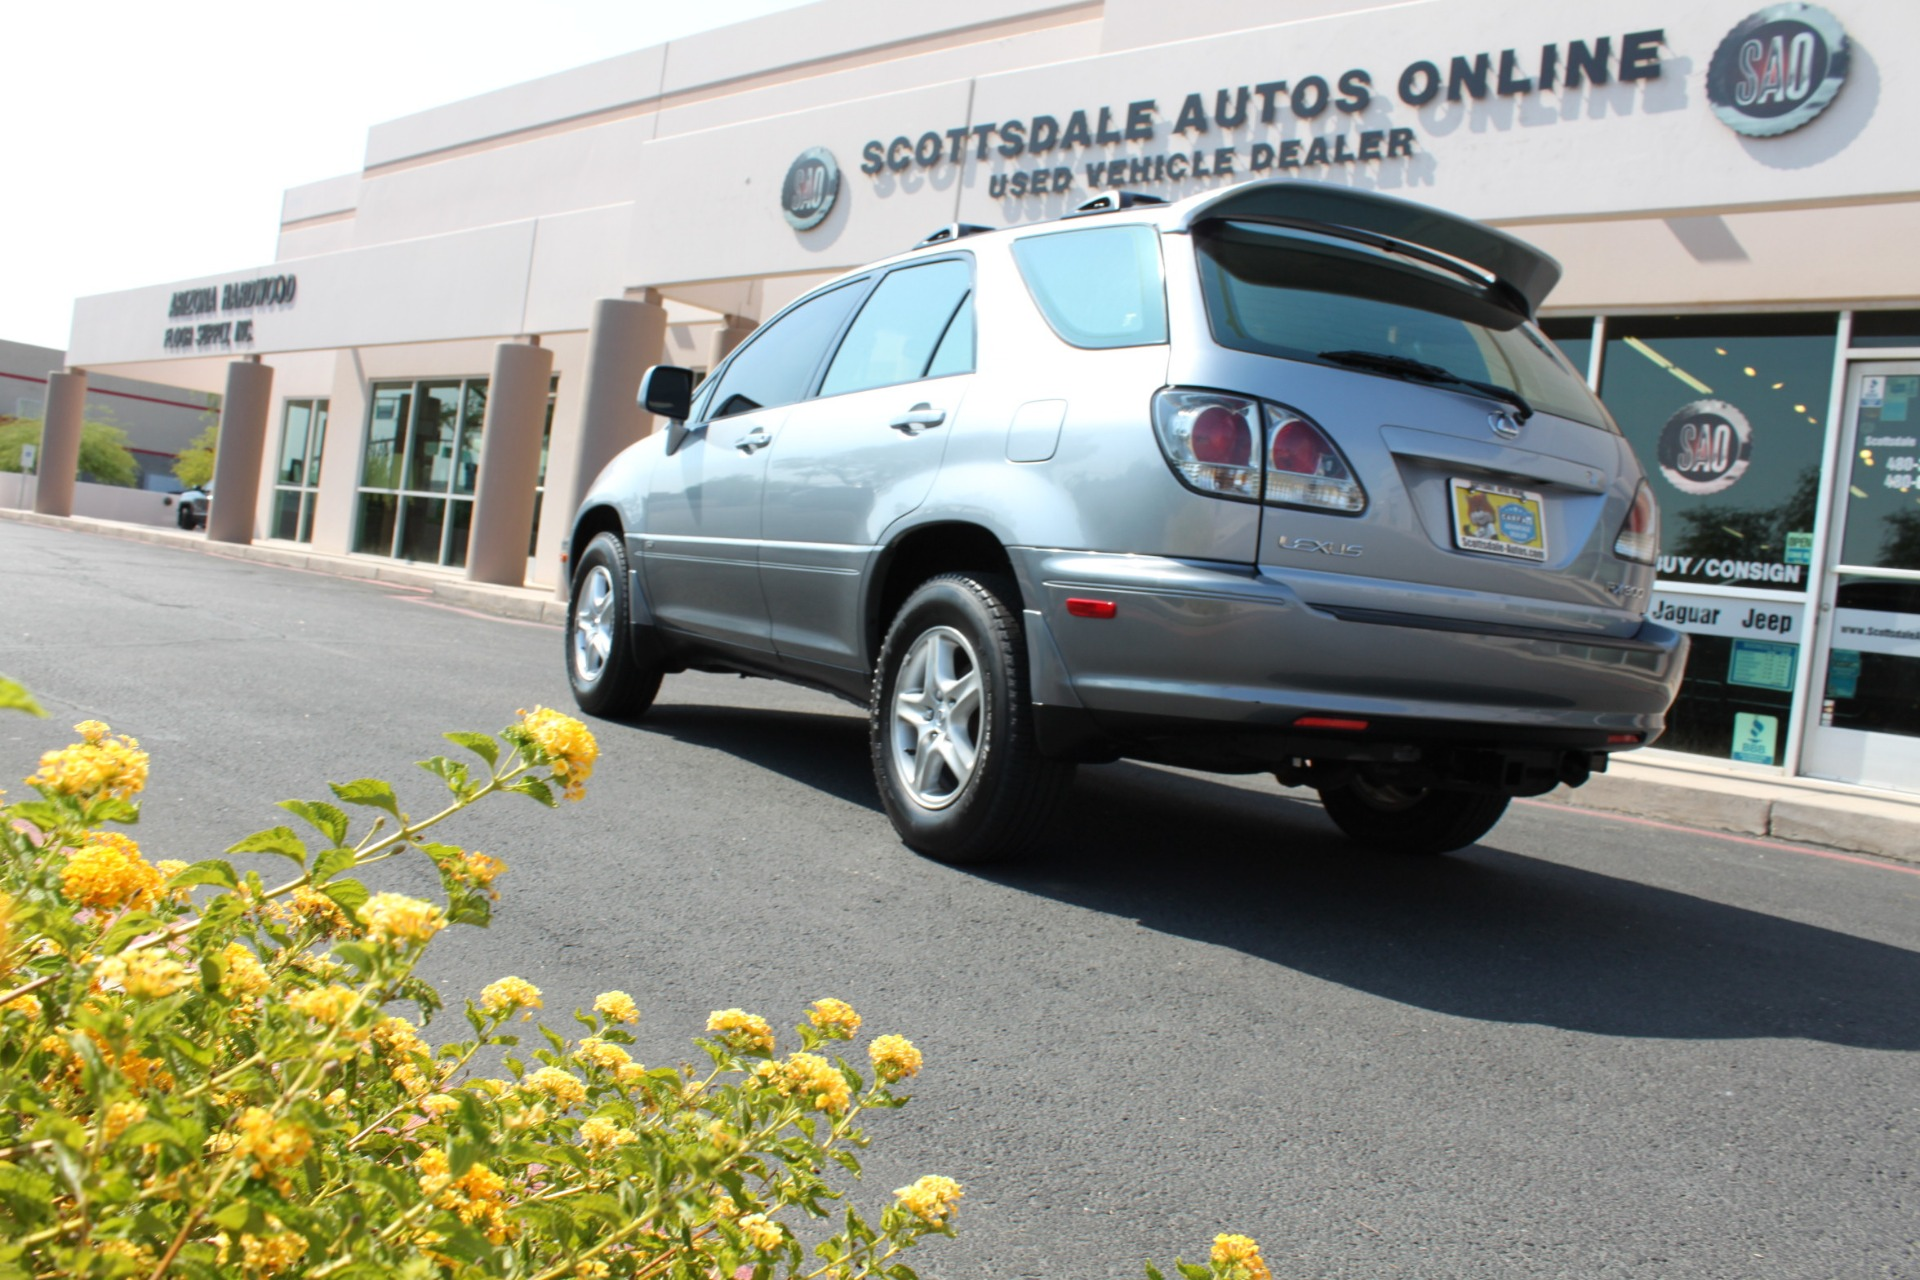 Used-2003-Lexus-RX-300-AWD-Chevelle